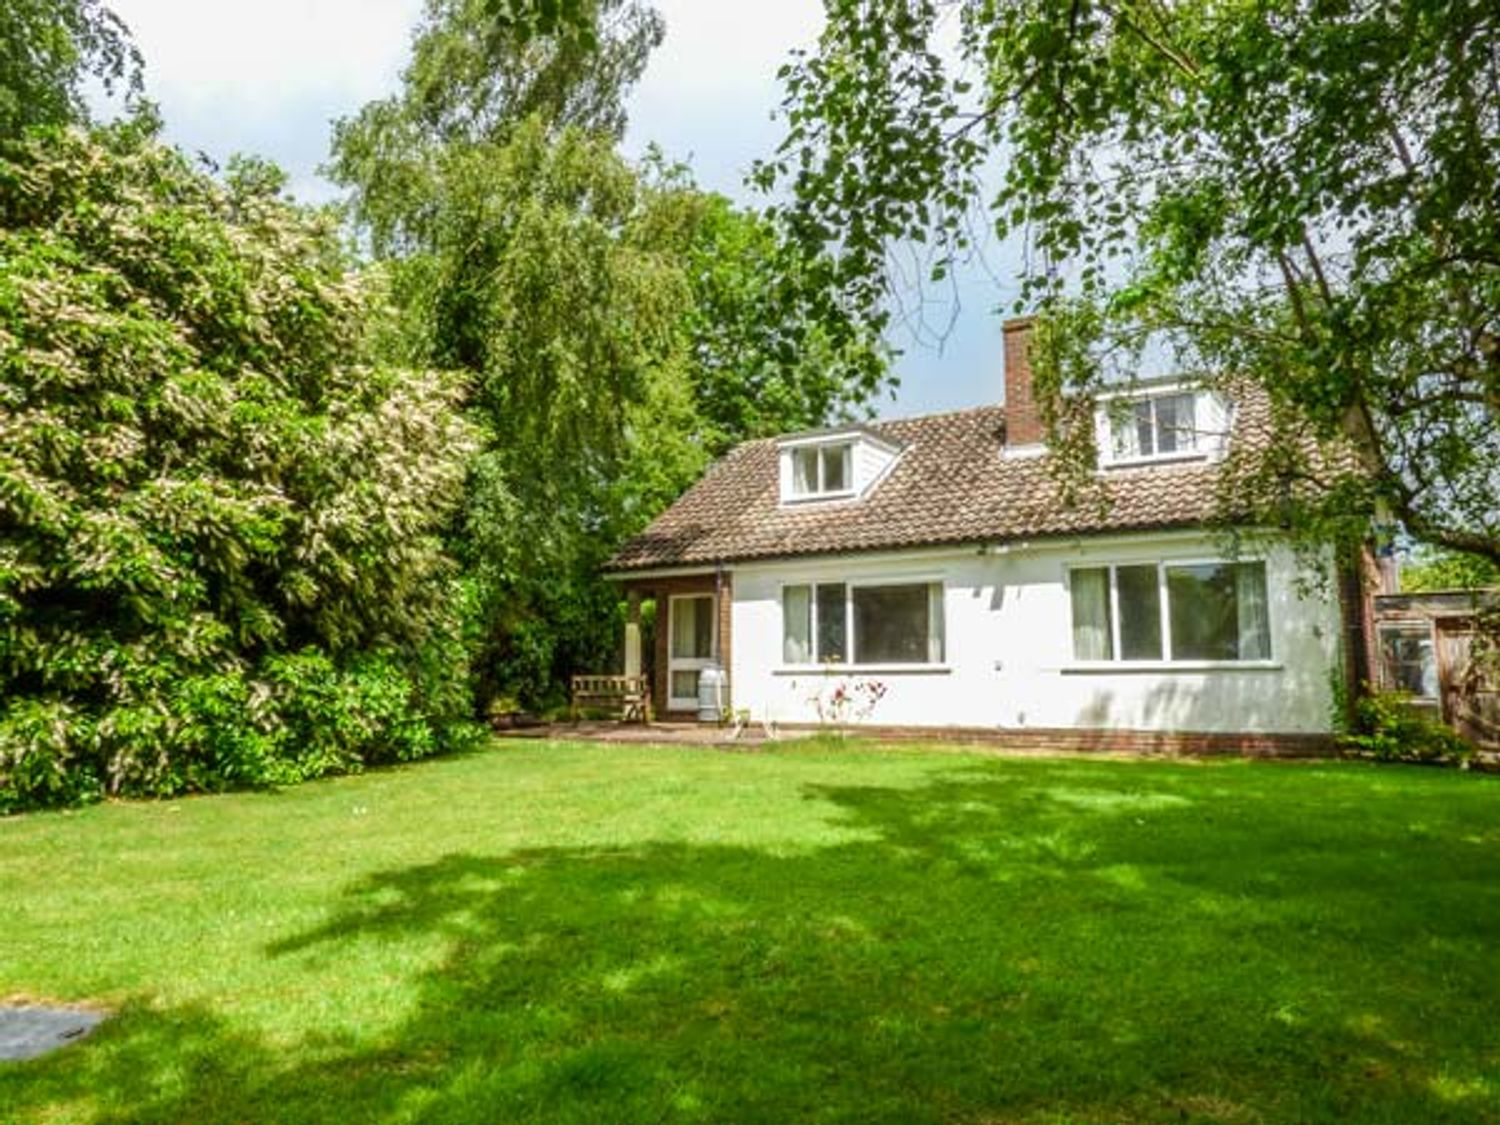 Holiday Cottages in Norfolk: Swan Dyke Cottage, Horning nr. Wroxham   Sykes Cottages